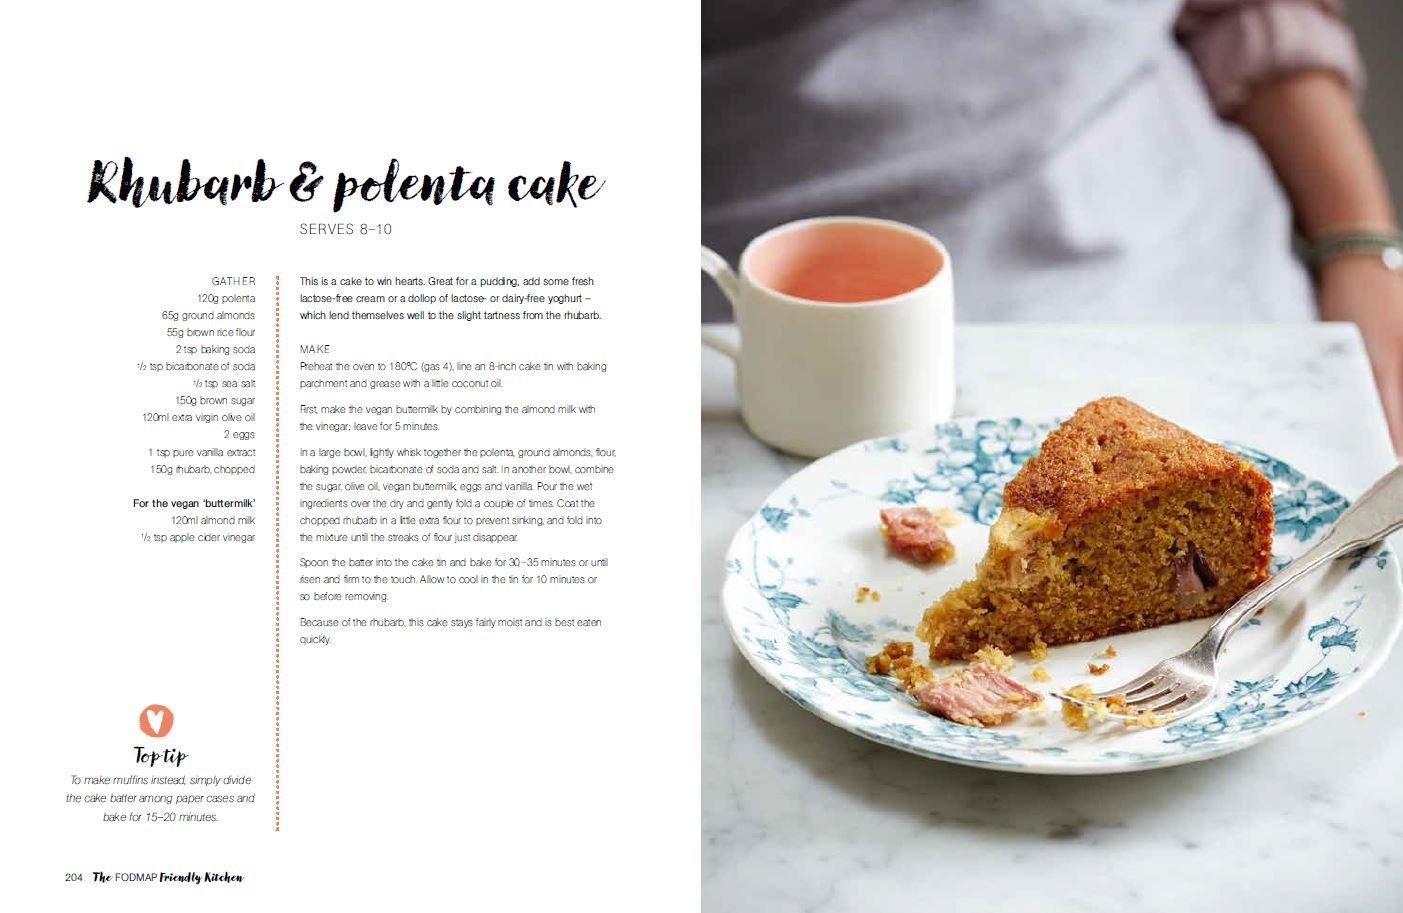 The FODMAP Friendly Kitchen rhubarb and polenta cake